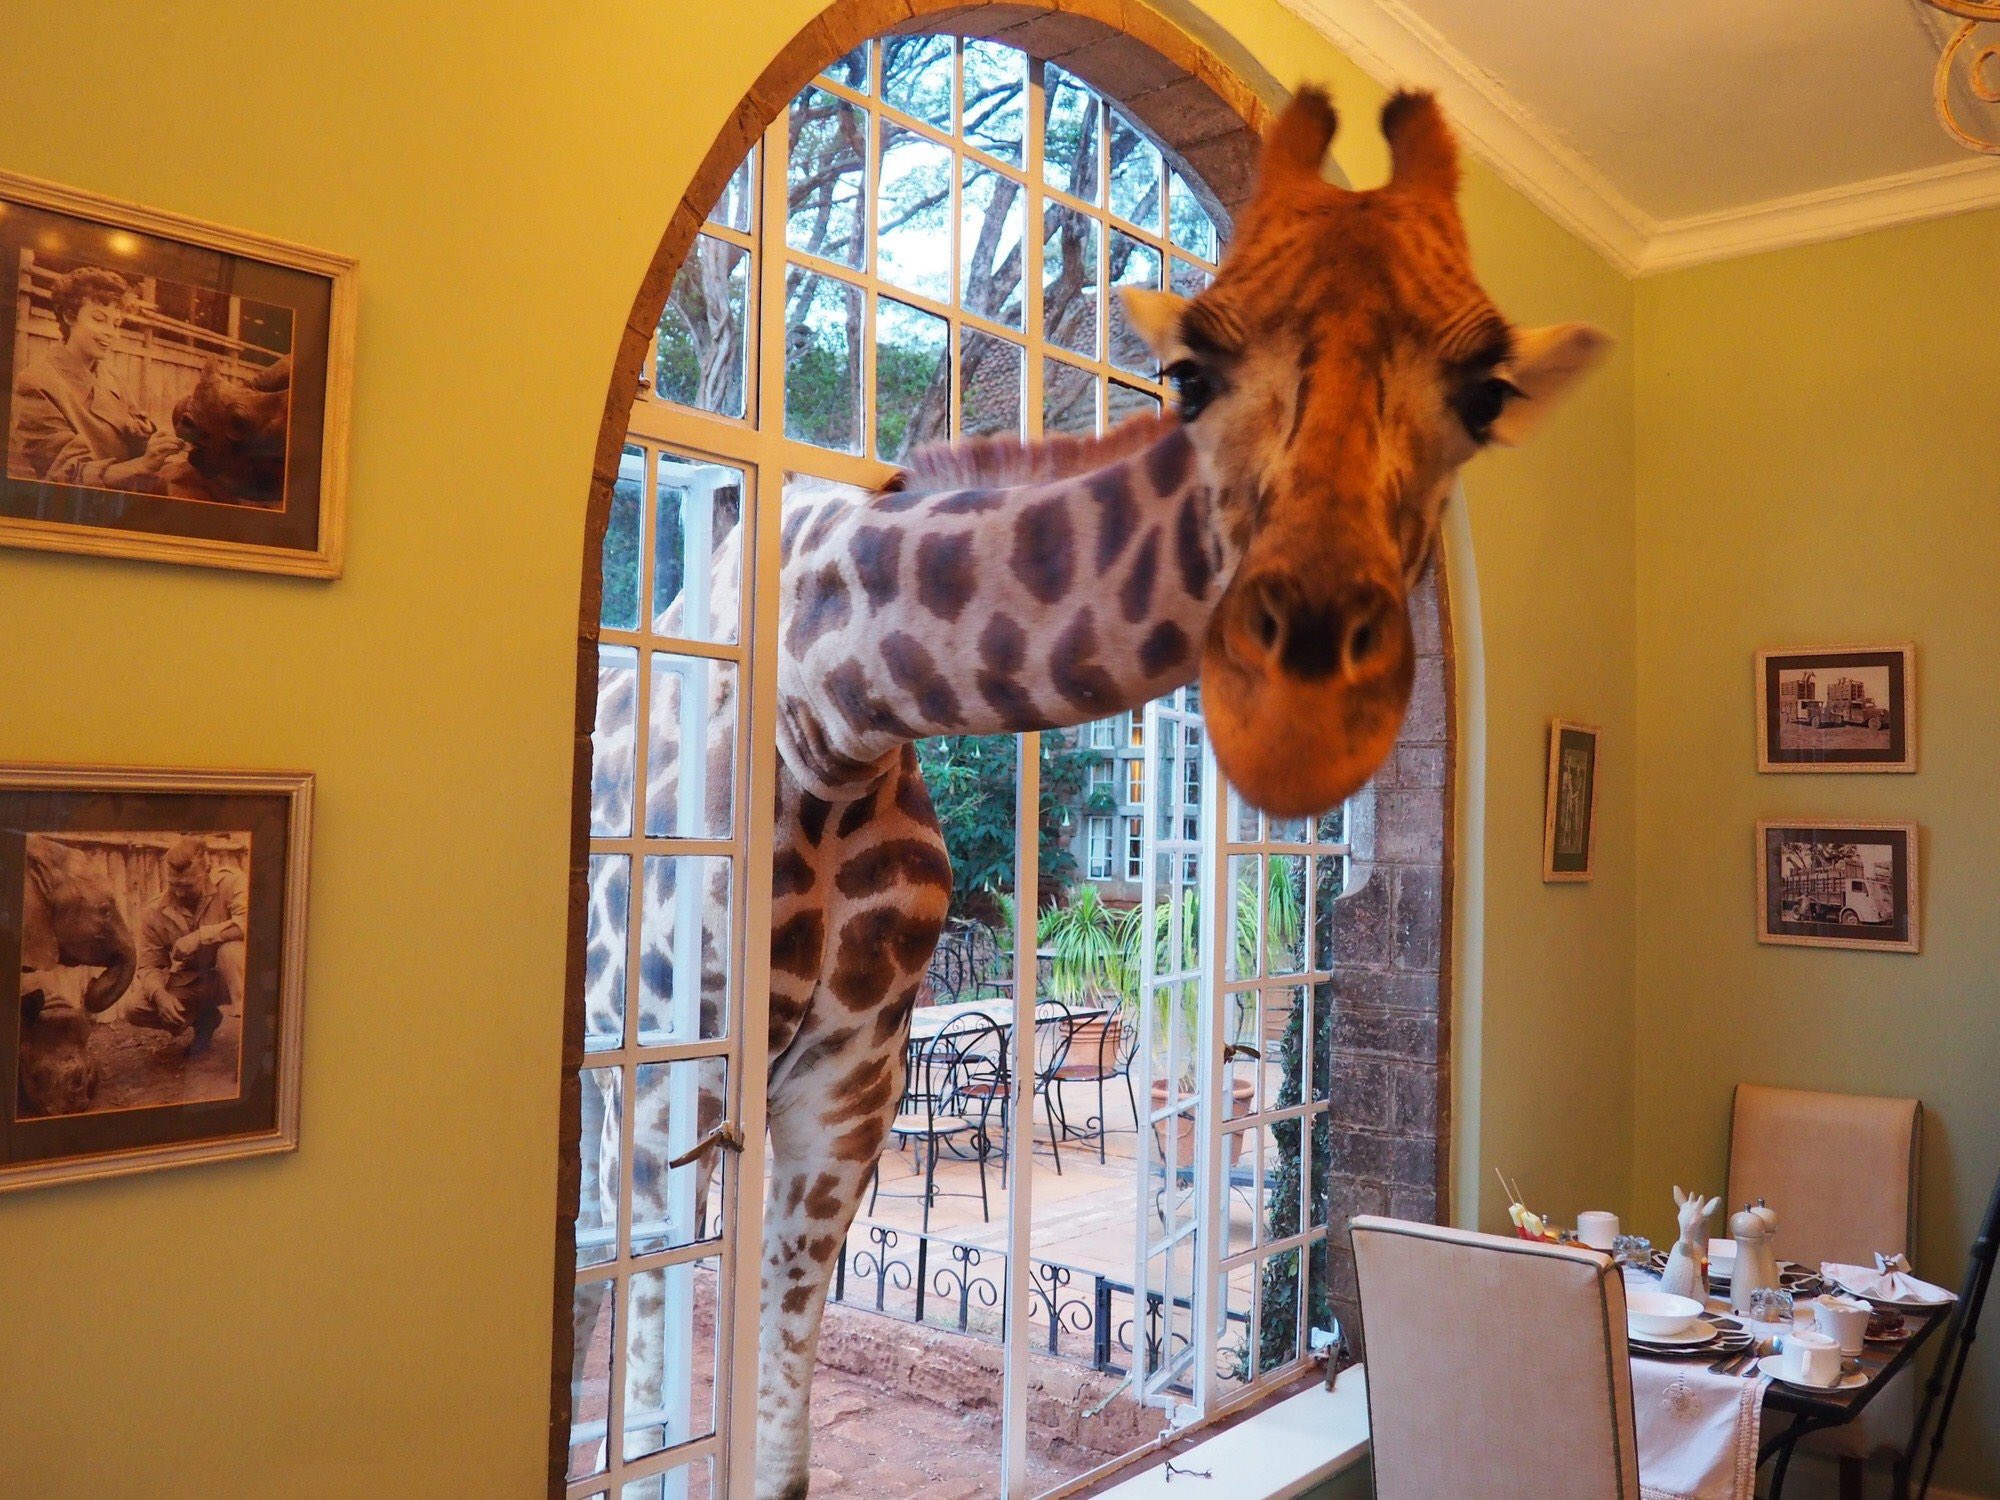 A curious giraffe pokes its head through the window of a restaurant.